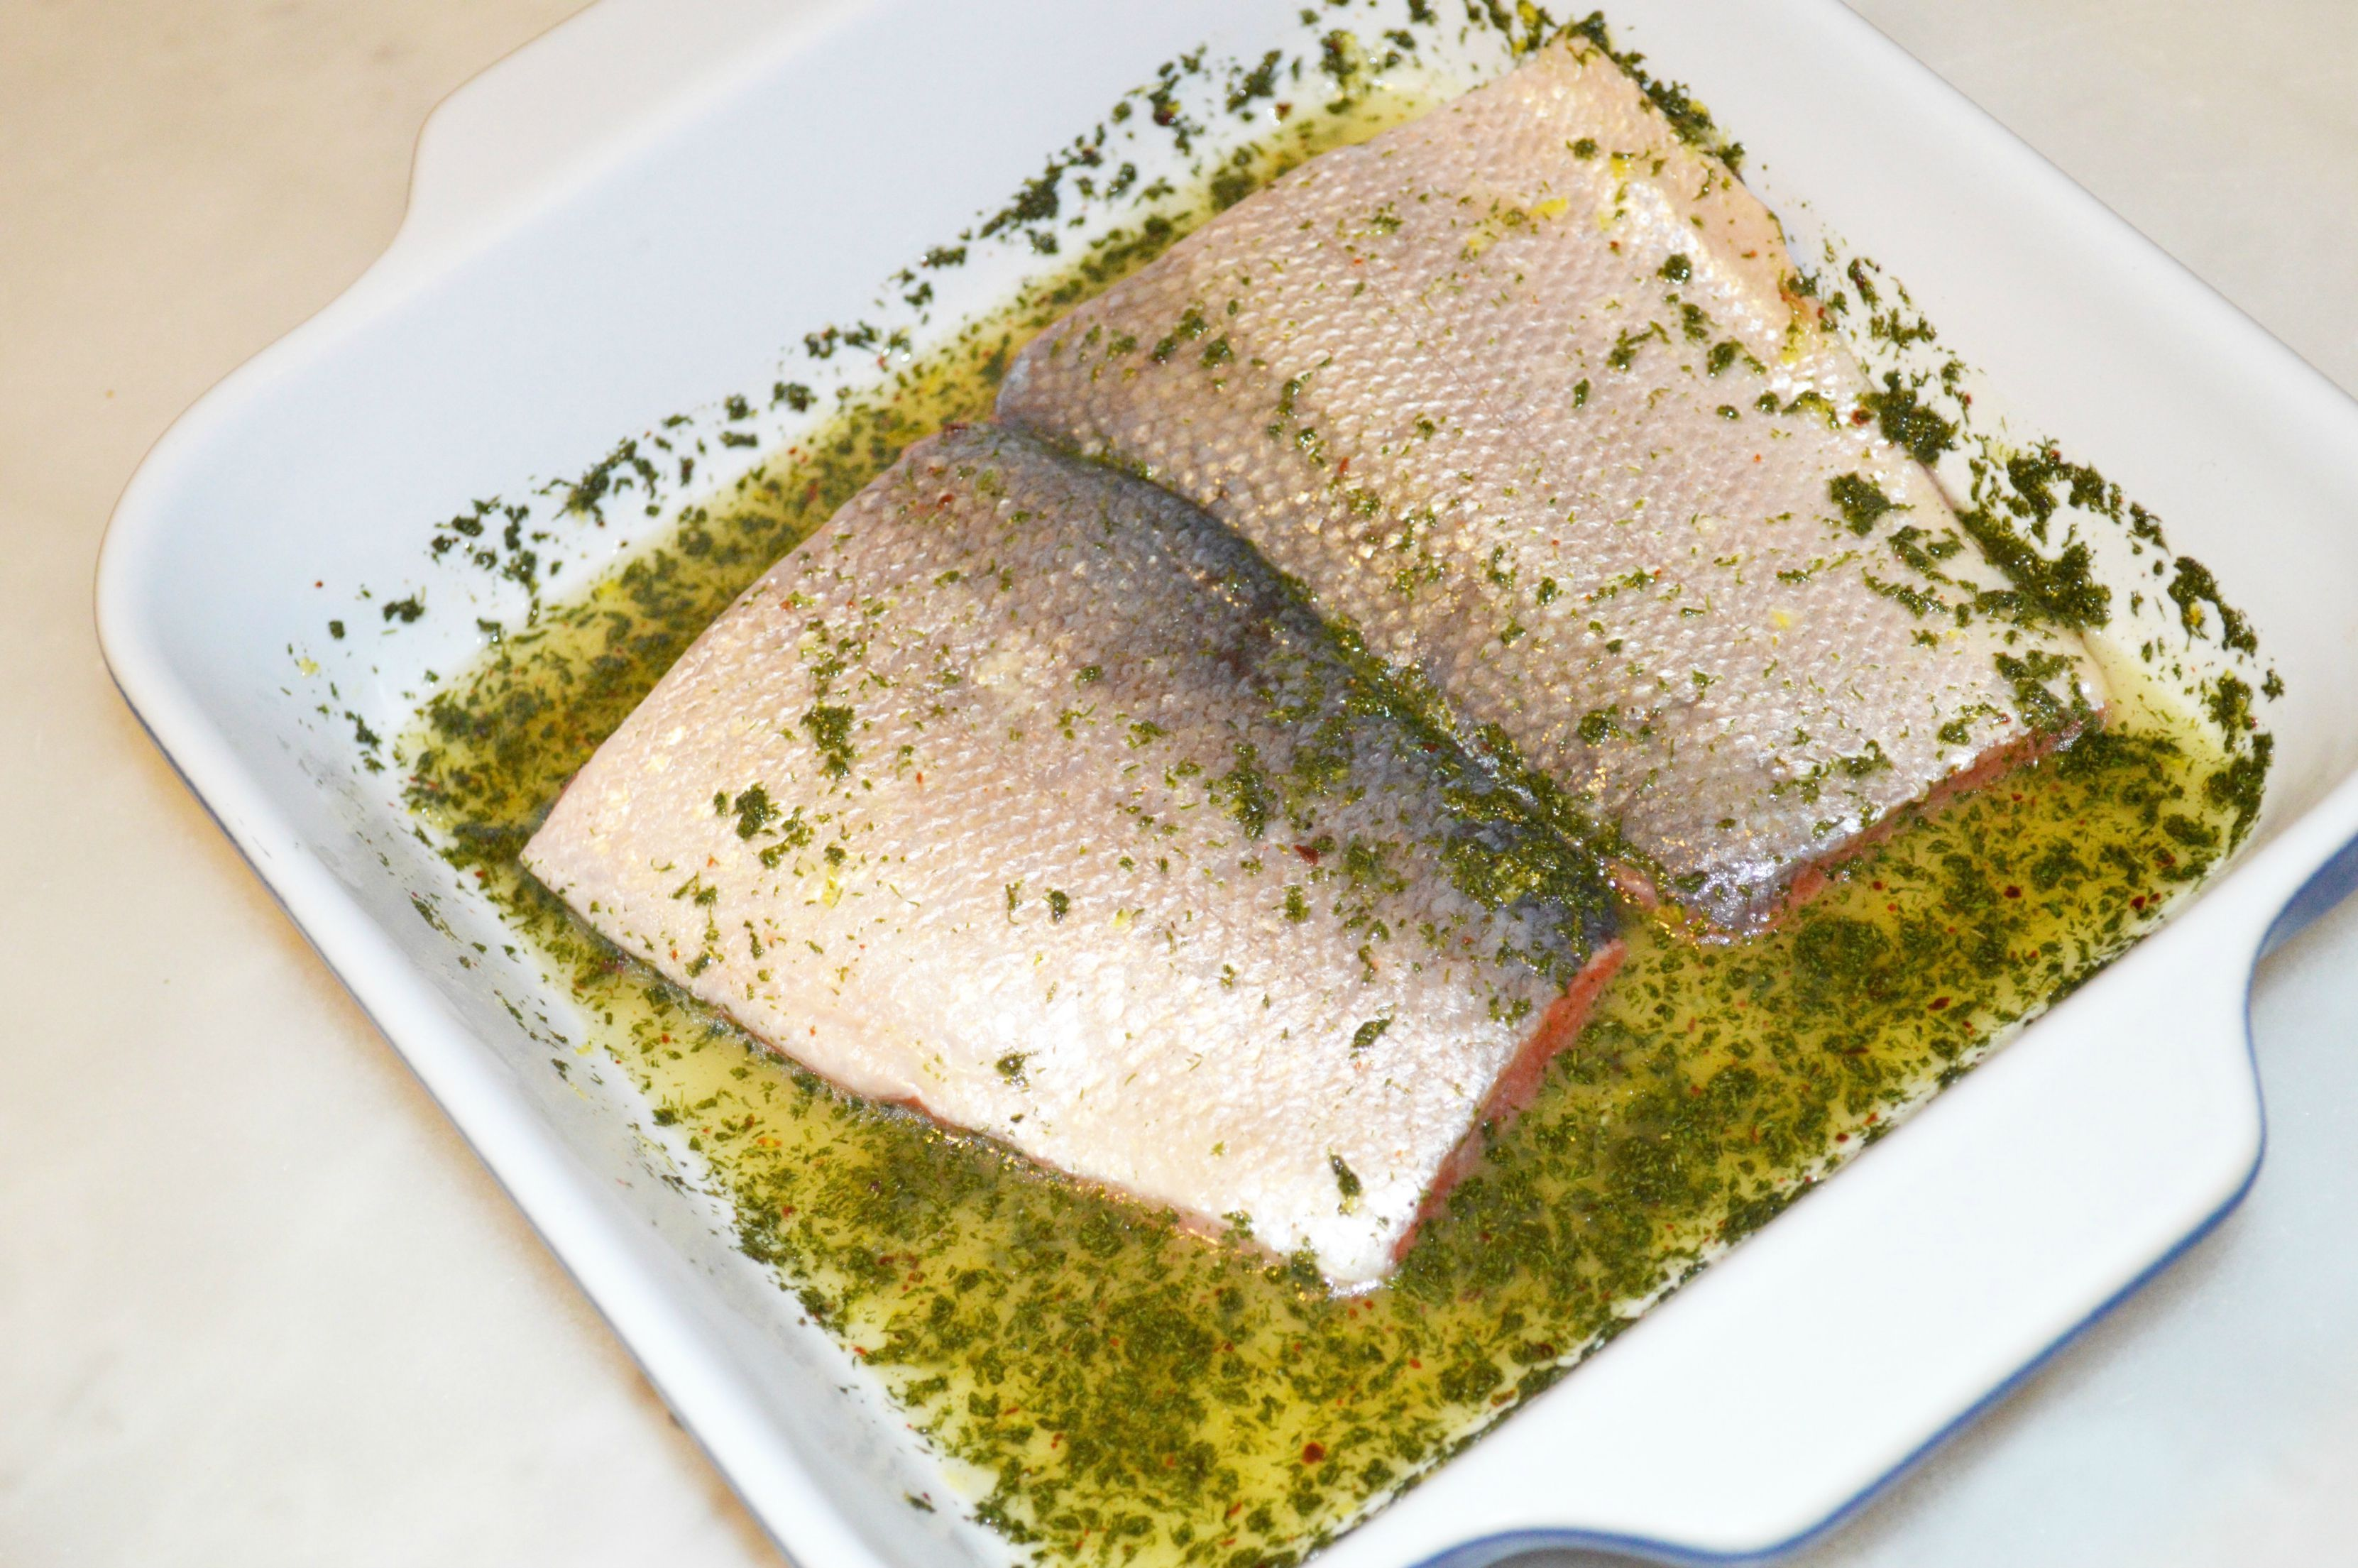 Lemon and dill salmon 3